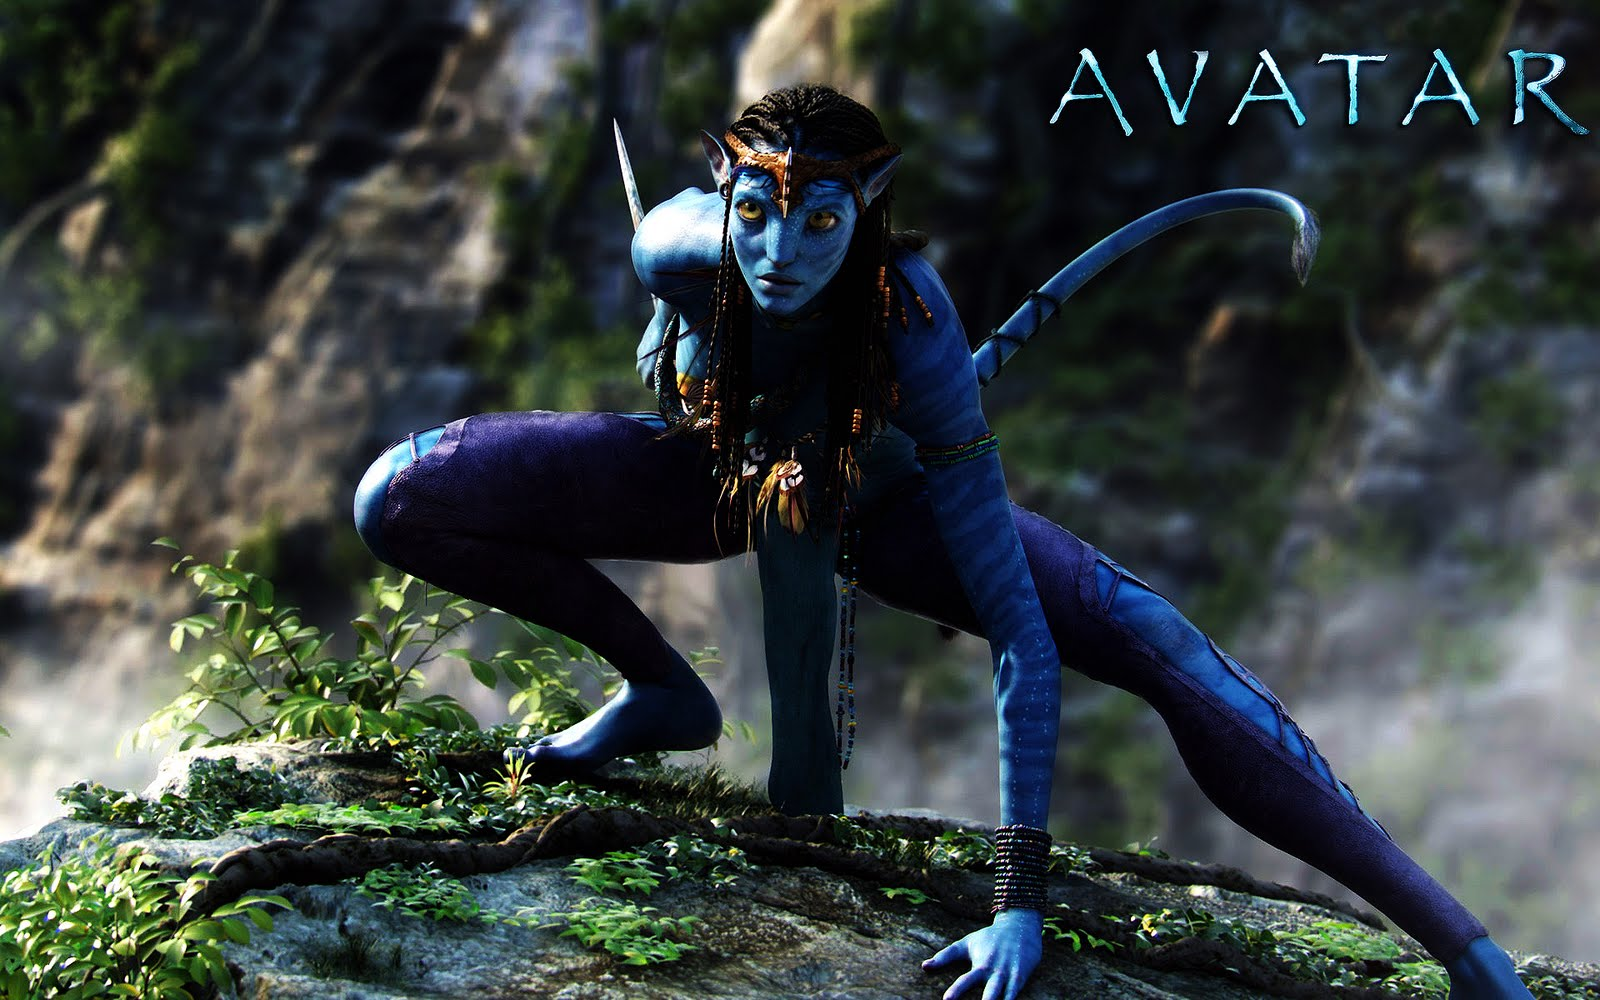 Free Hd Movie Download Point Avatar 2009 Free Hd Movie: Download Wallpaper Avatar For Your Desktop